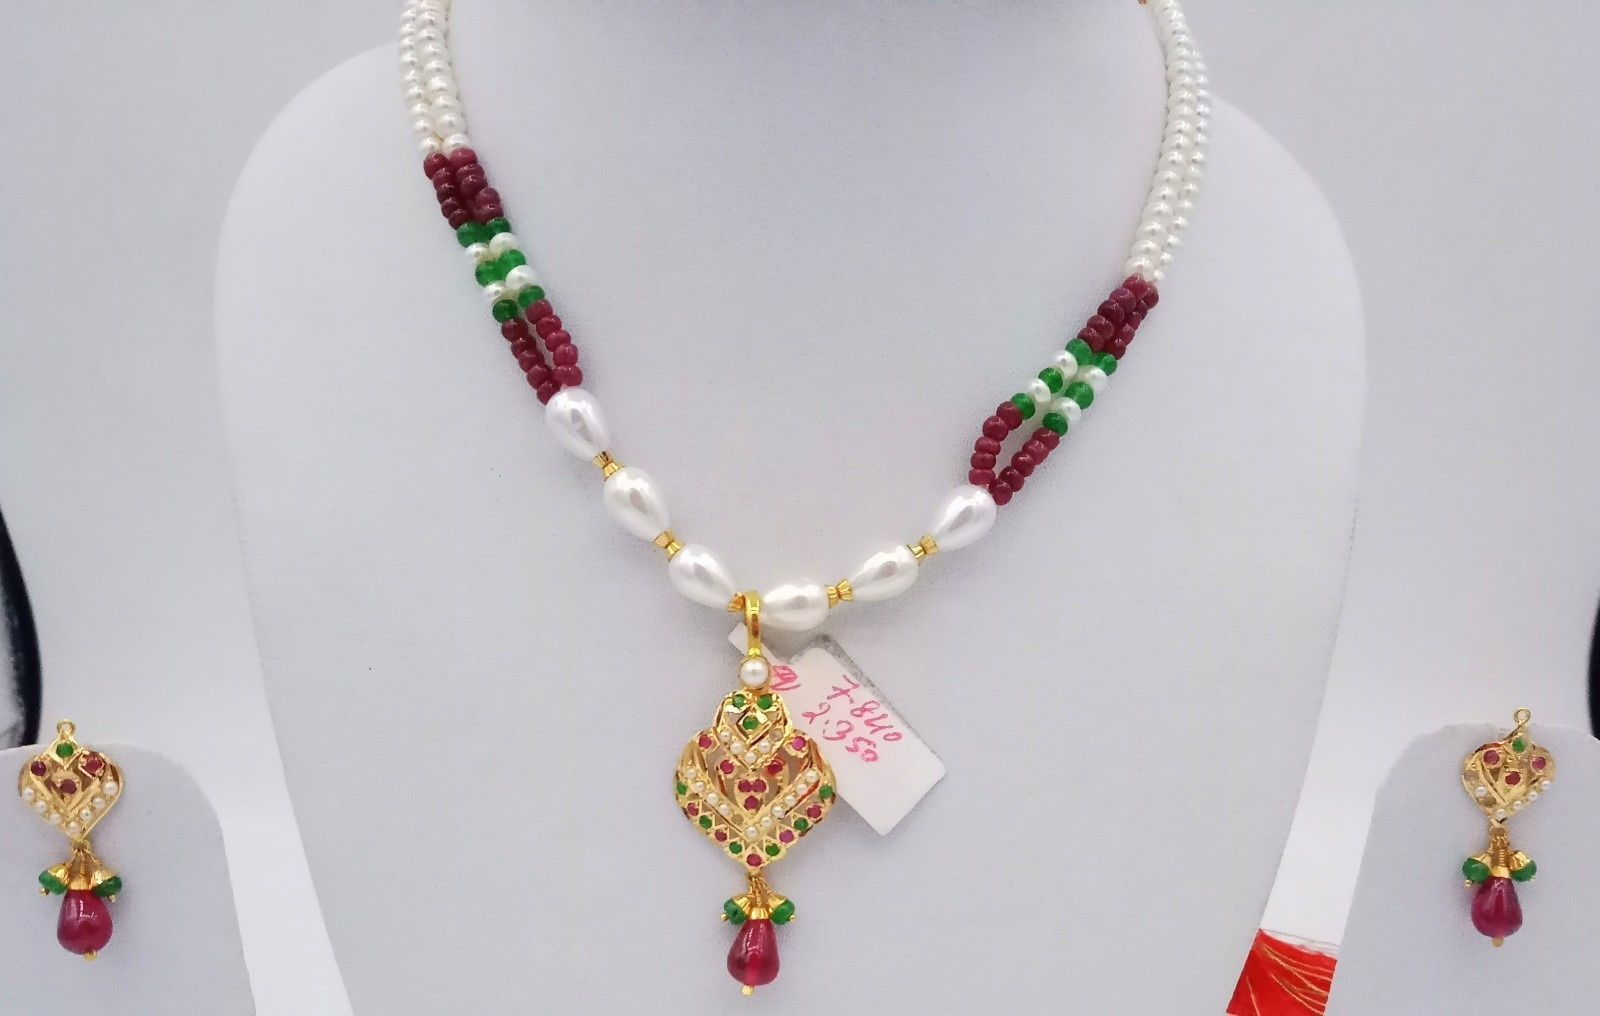 690d30e0ef1677 S l1600. S l1600. Previous. Light weight real ruby emerald pearl studded  beads string necklace ...